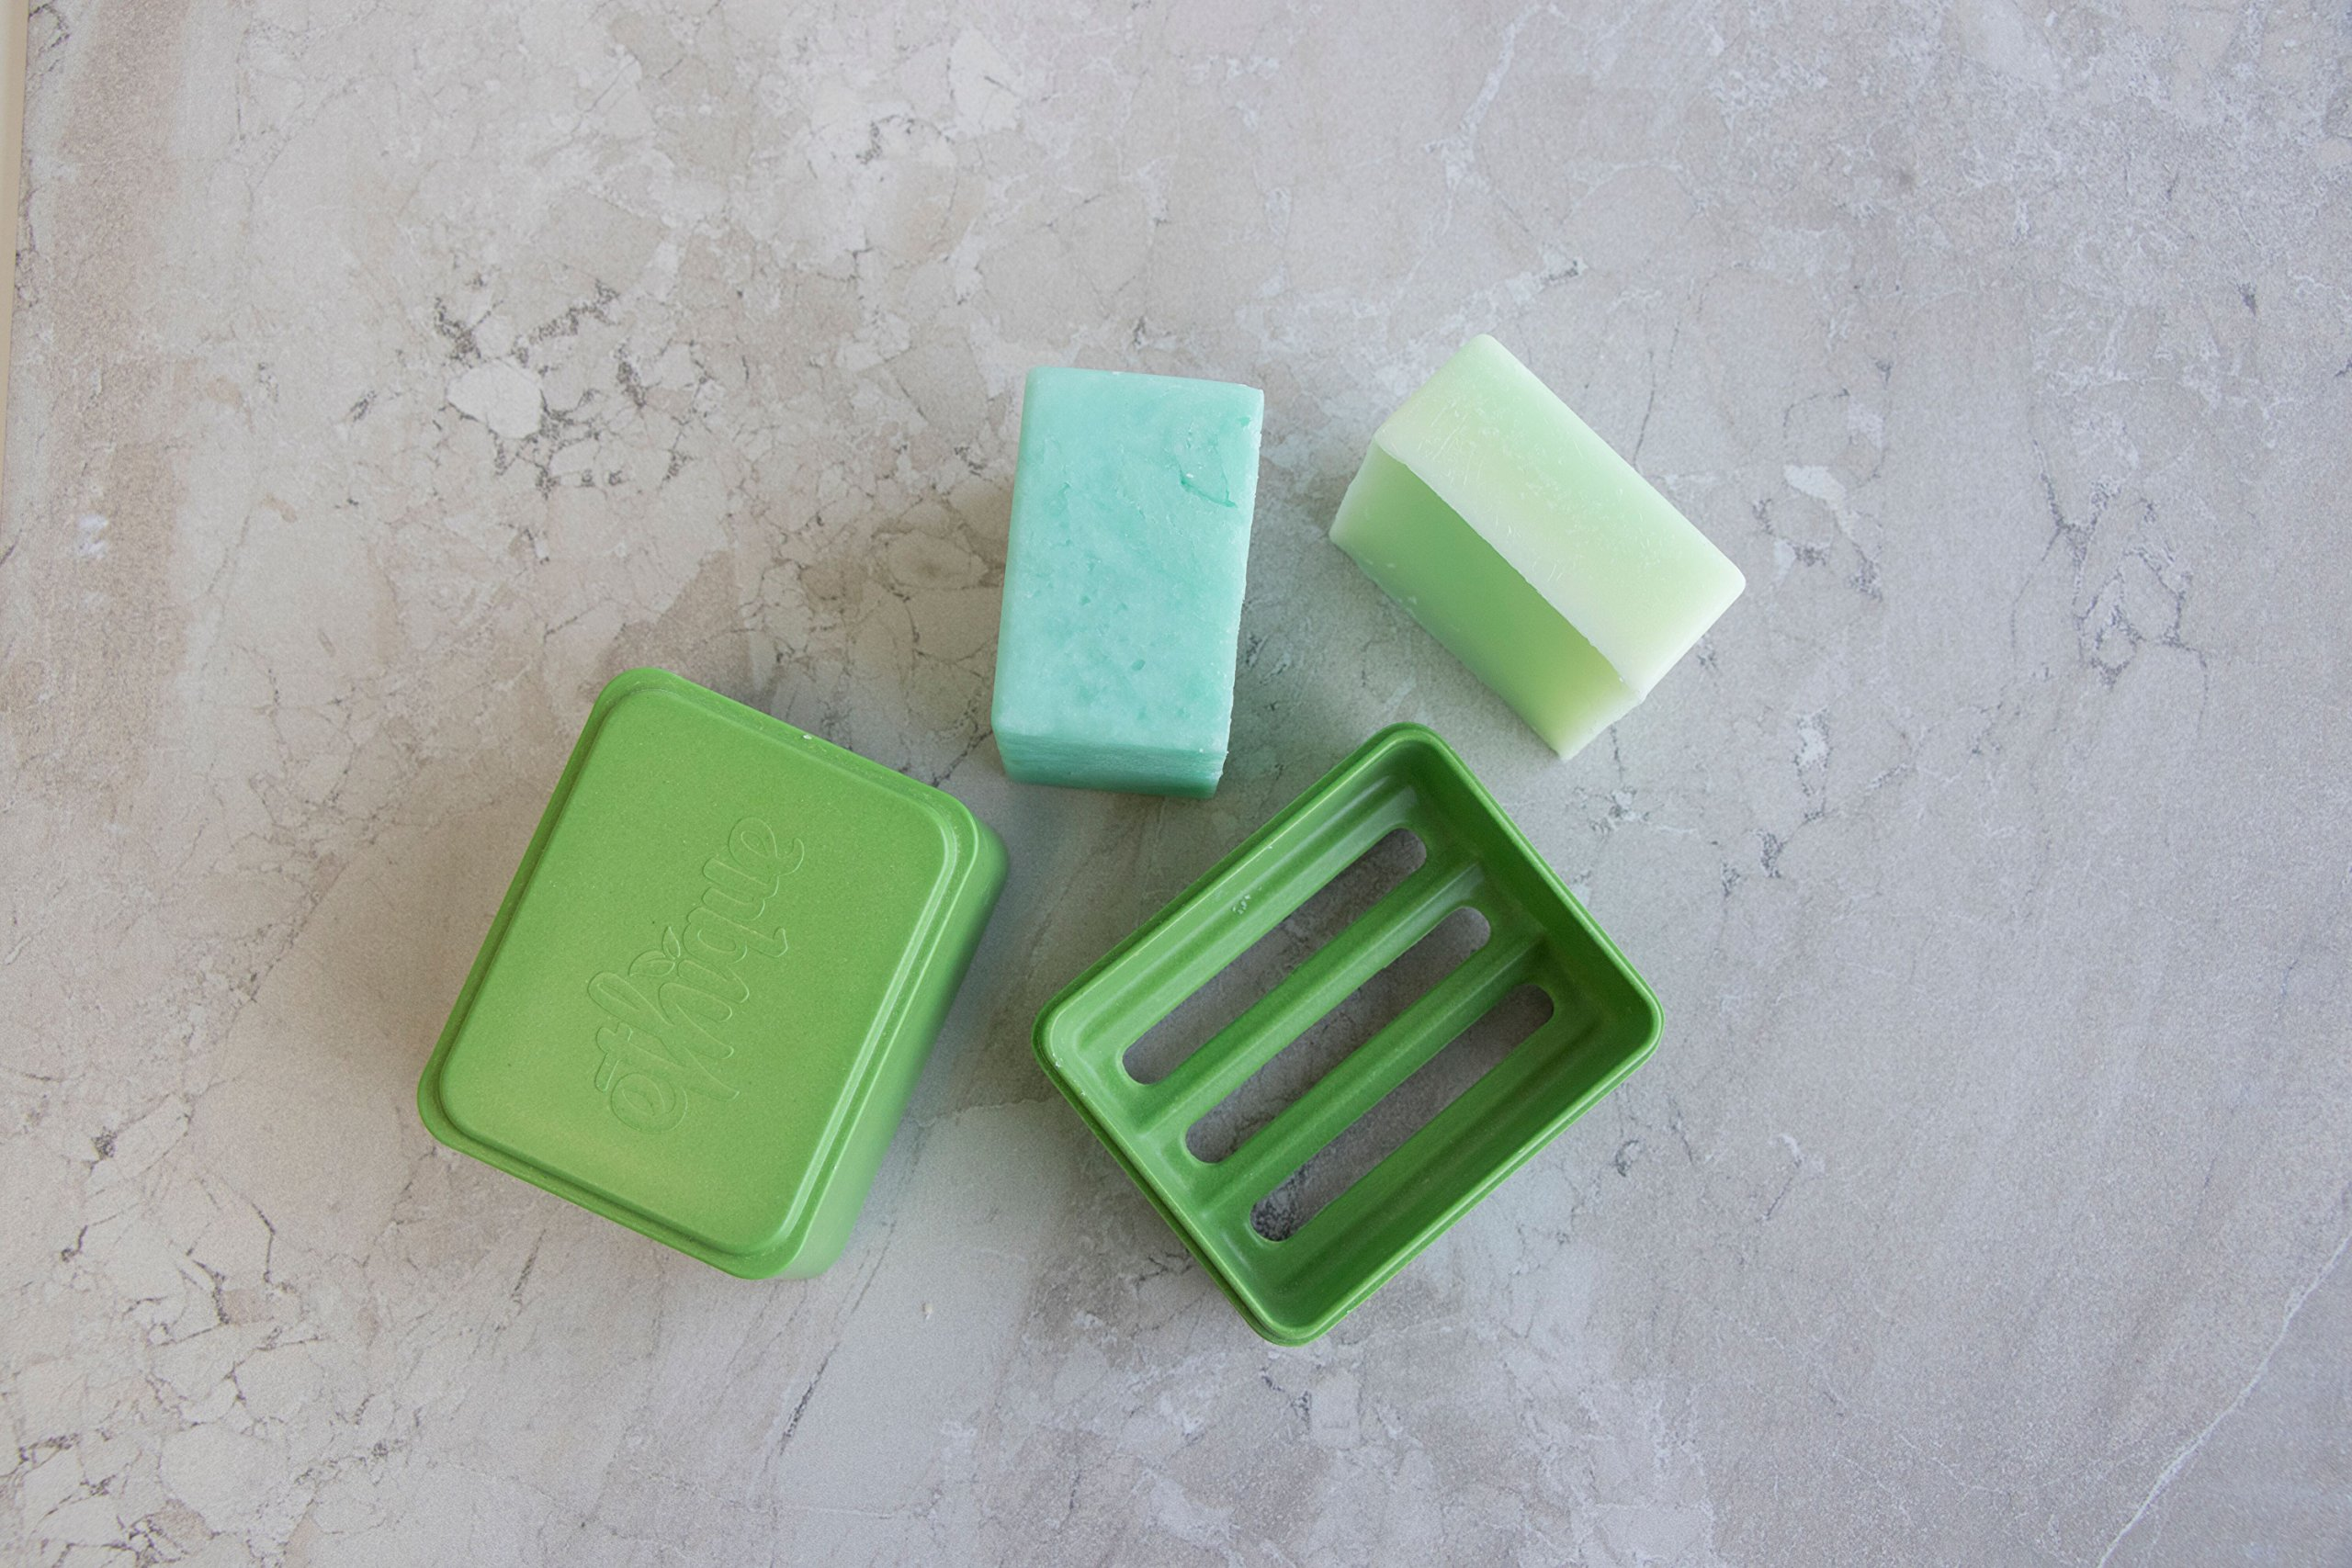 Ethique In Shower Container Green by Ethique (Image #4)